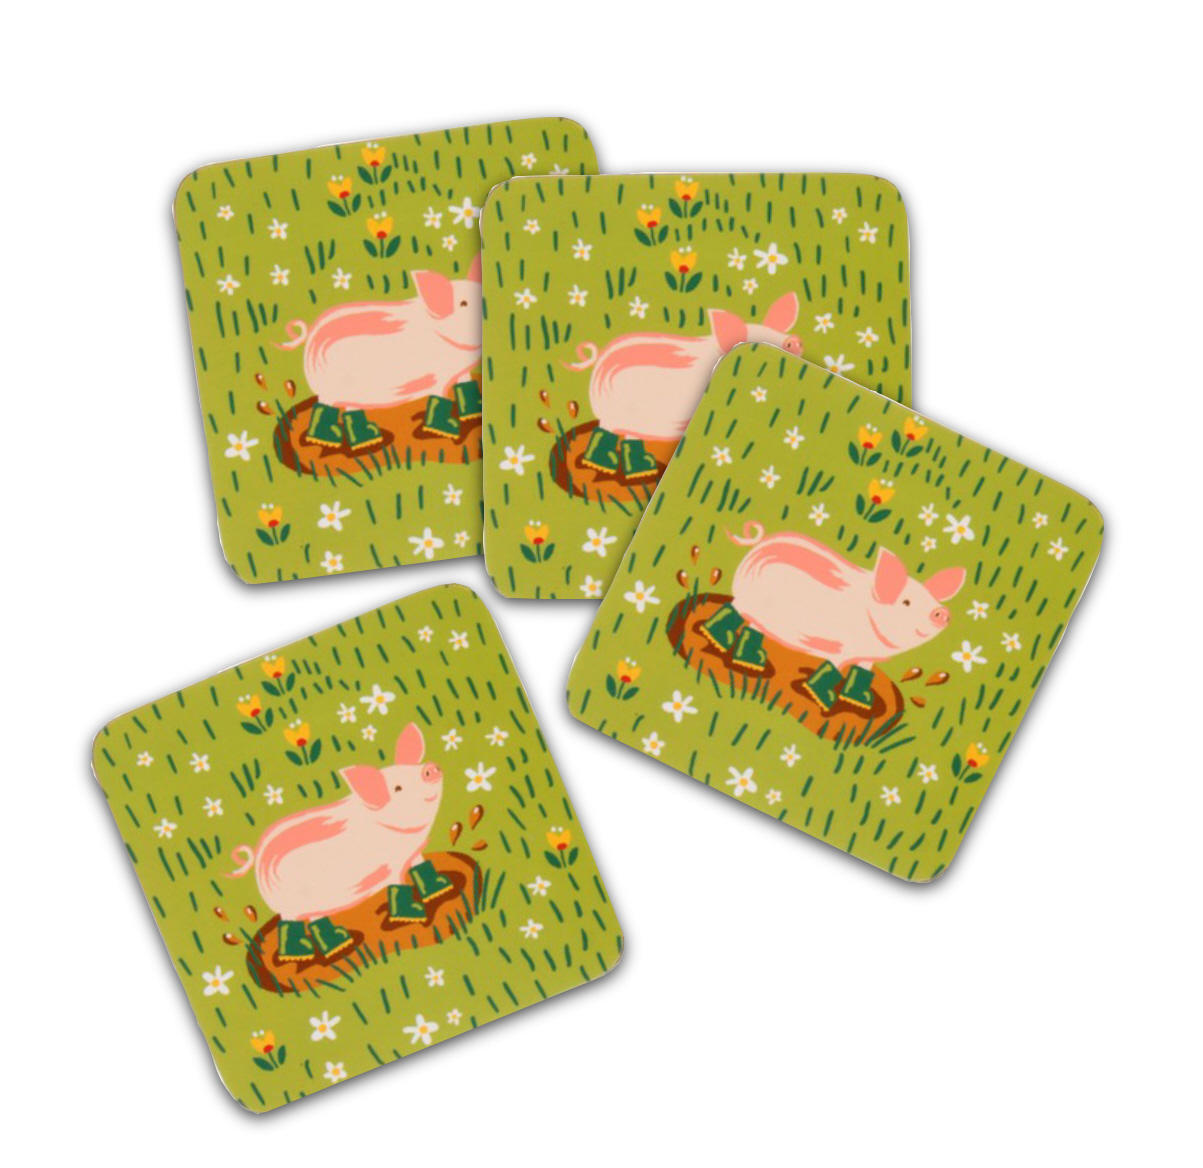 Jennie's Farm Set of Four Coasters